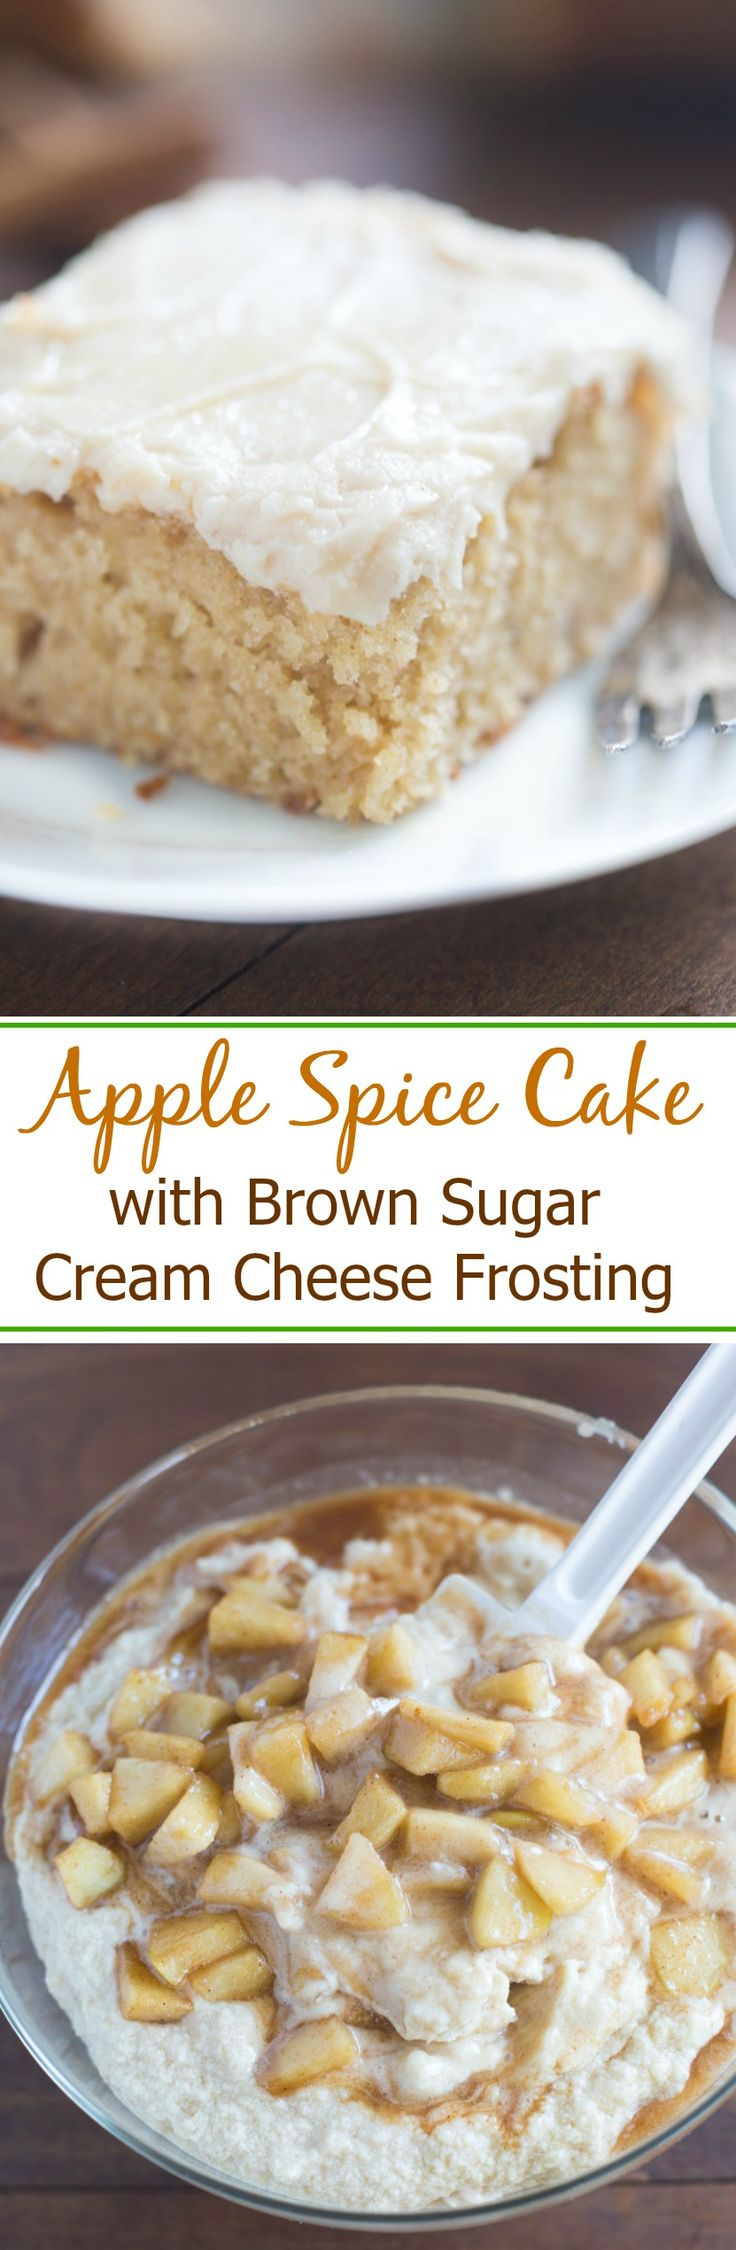 This apple pumpkin spice cake is a very delicious thanksgiving treat that I make!